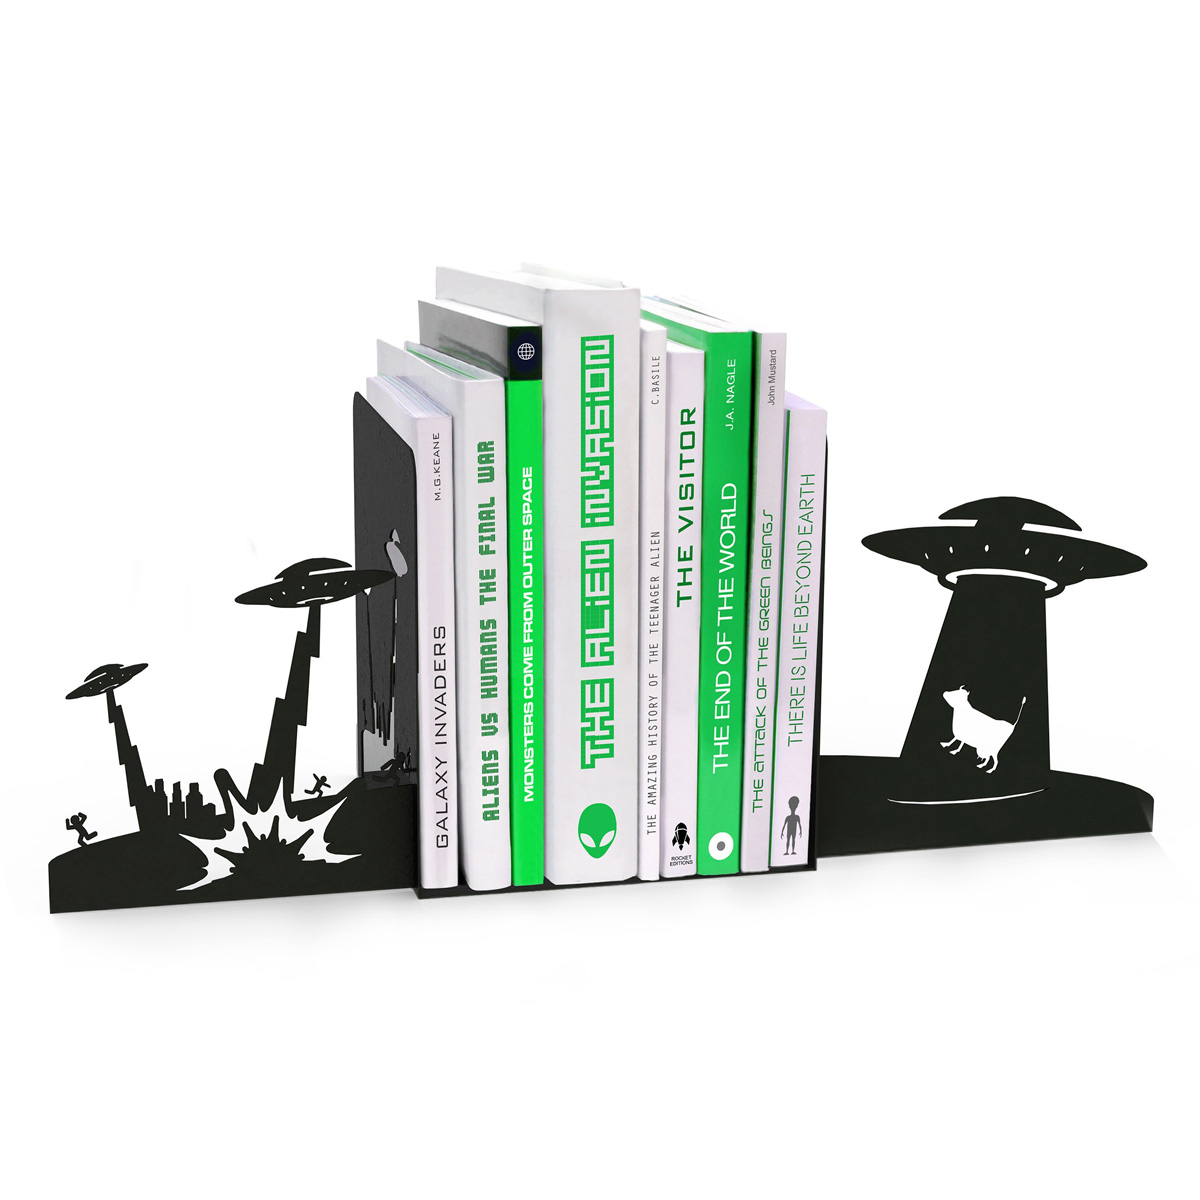 Alien Invasion Bookends - The Green Head